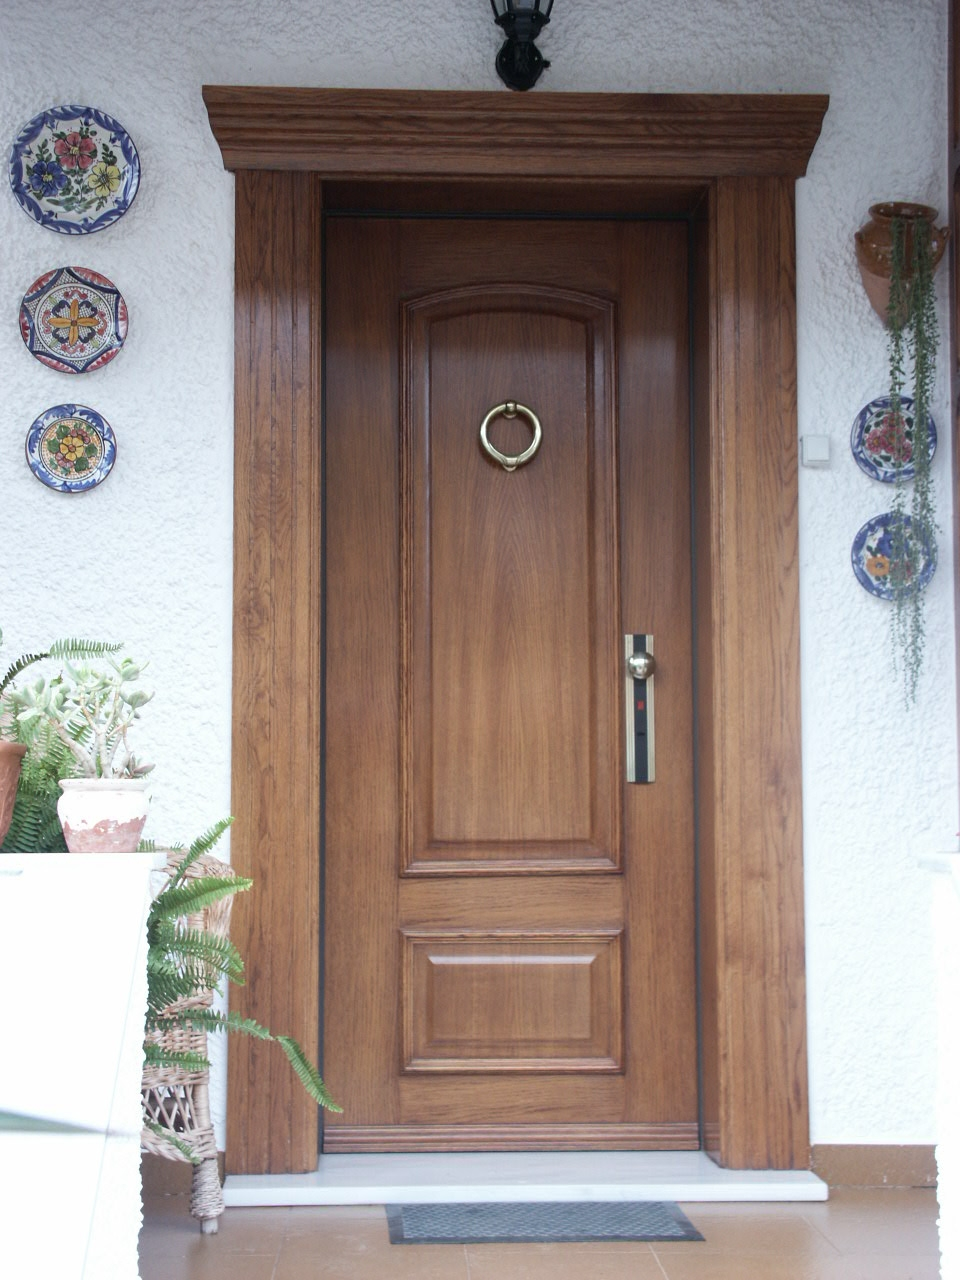 ver otros modelos puertas rsticas pictures picture to pin